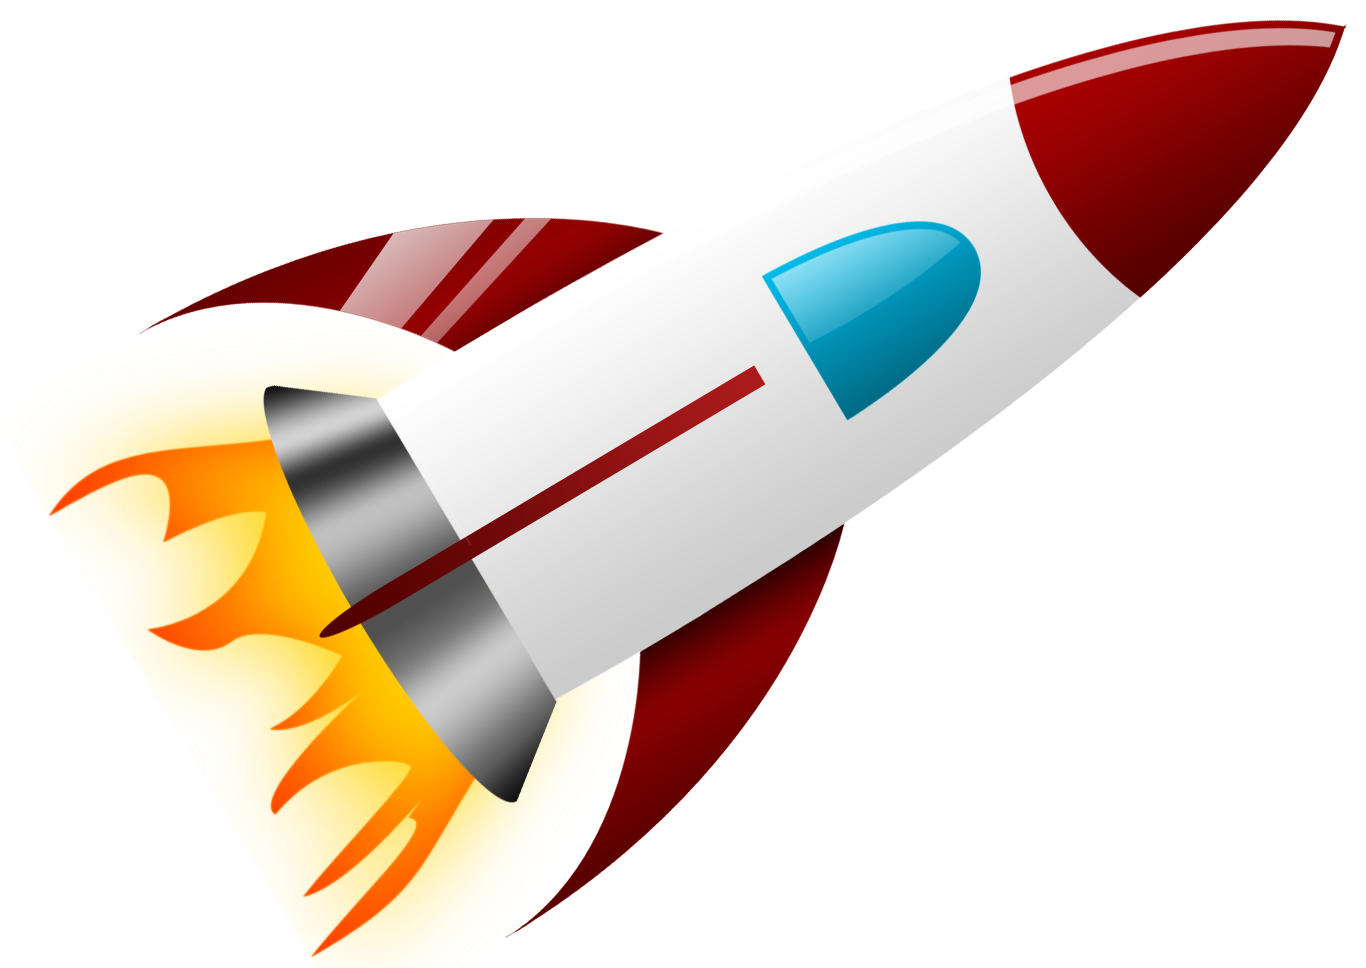 graphic library download Rocket Clipart transparent background